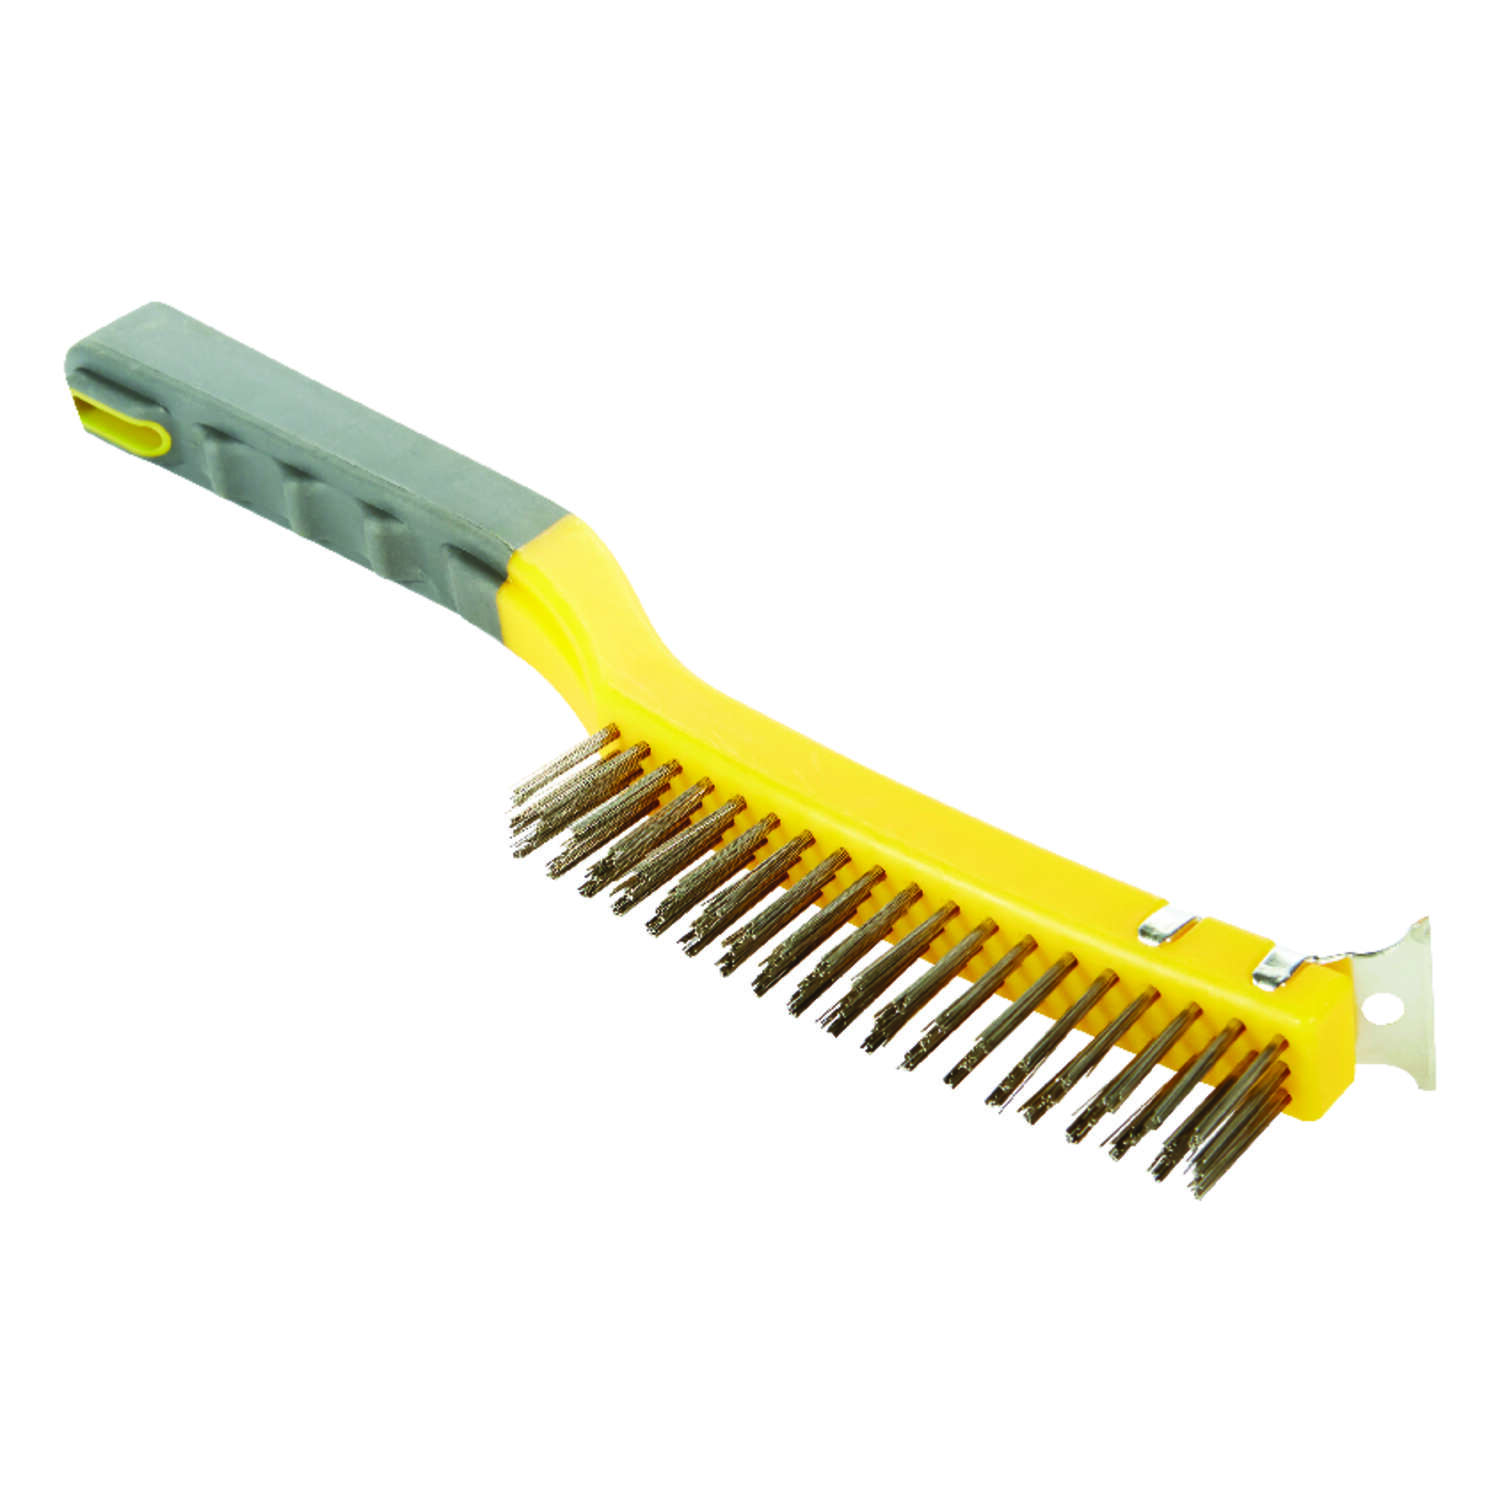 Allway  1 in. W x 13.5 in. L Stainless Steel  Wire Brush with Scraper